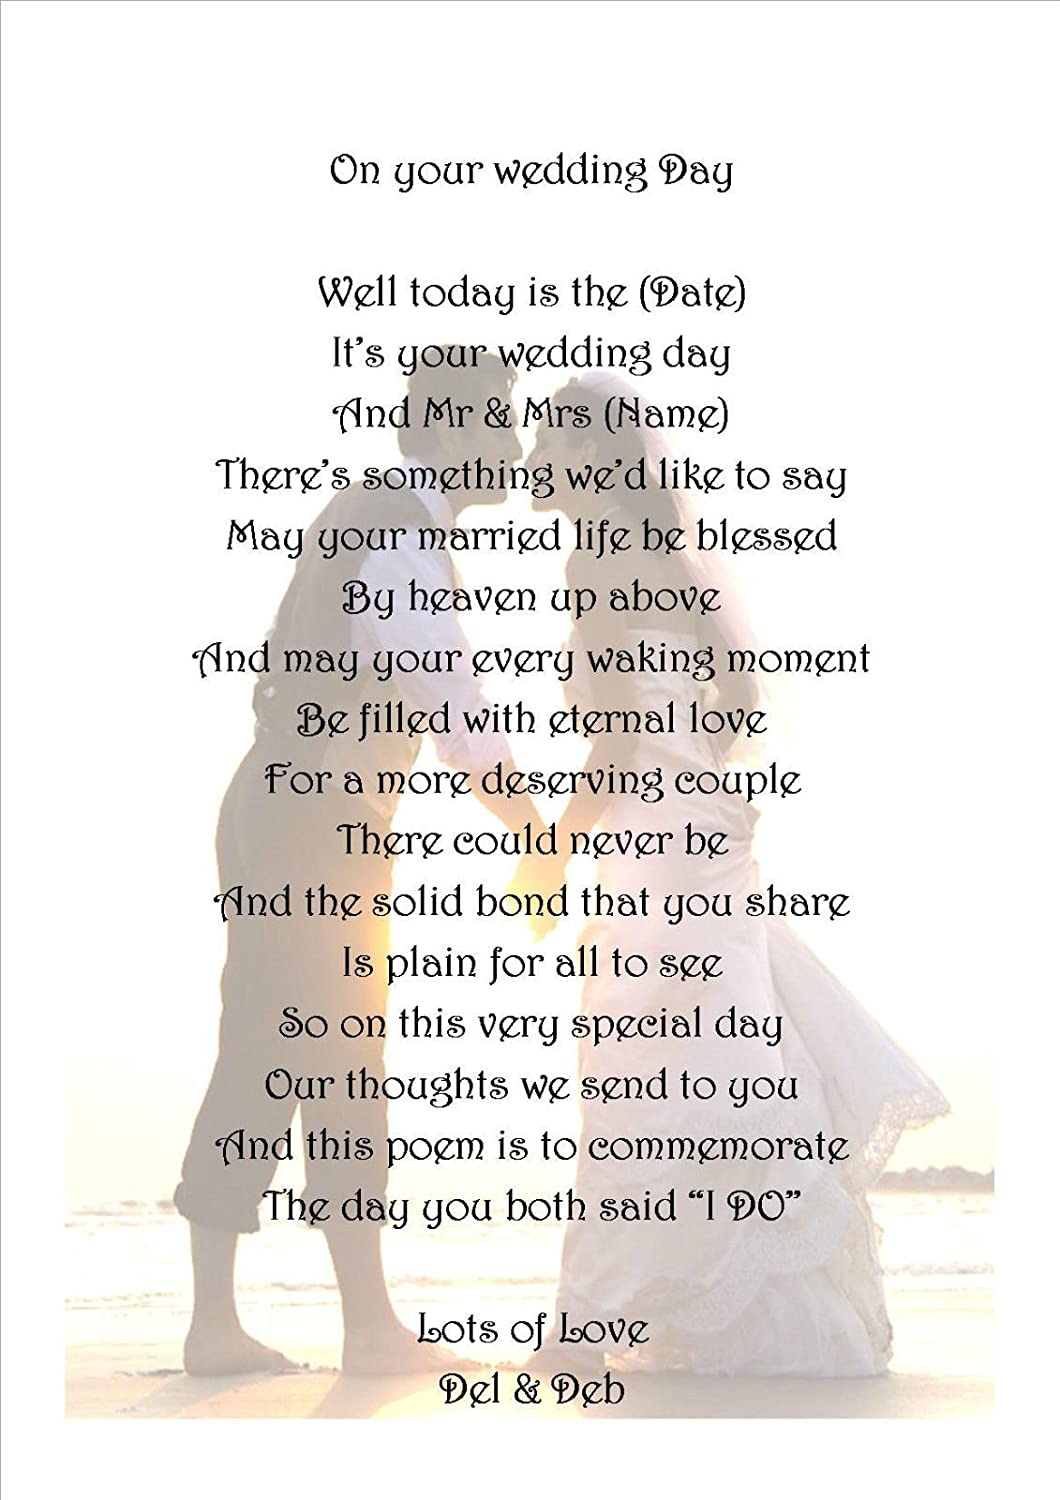 personalised poem ON YOUR WEDDING DAY GIFT for Bride and Groom